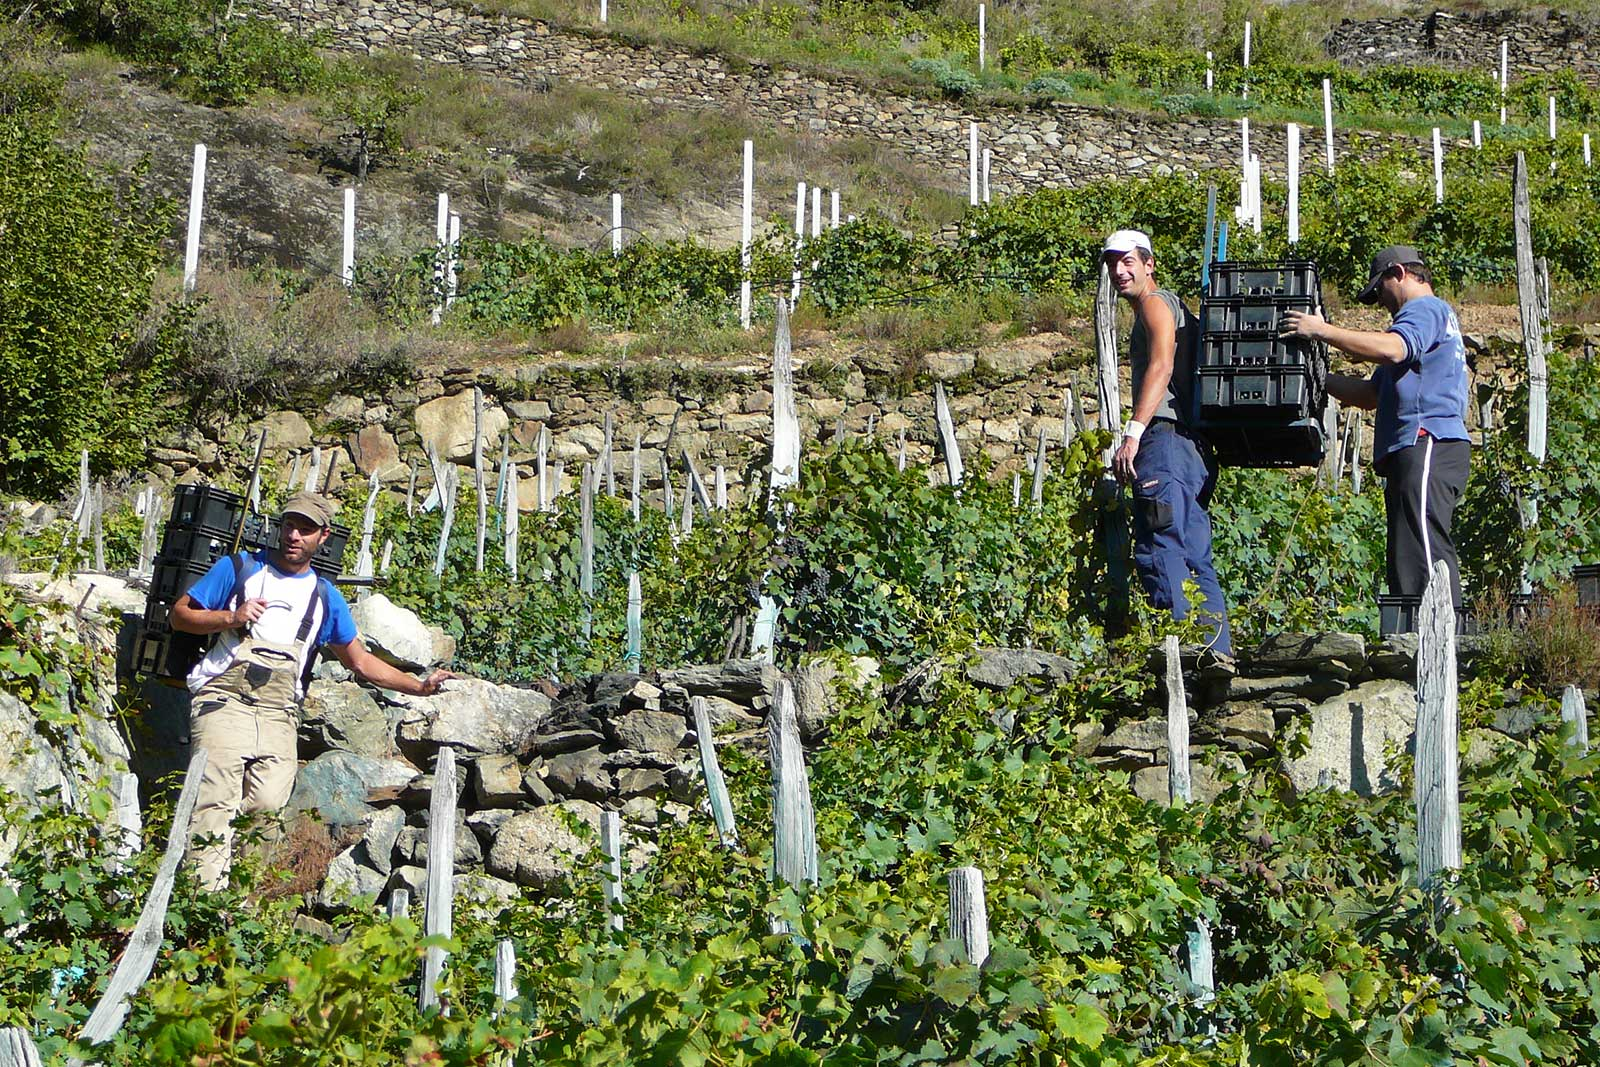 The team at Sandro Fay working the harvest in their terraced vineyards. ©Vini Sandro Fay